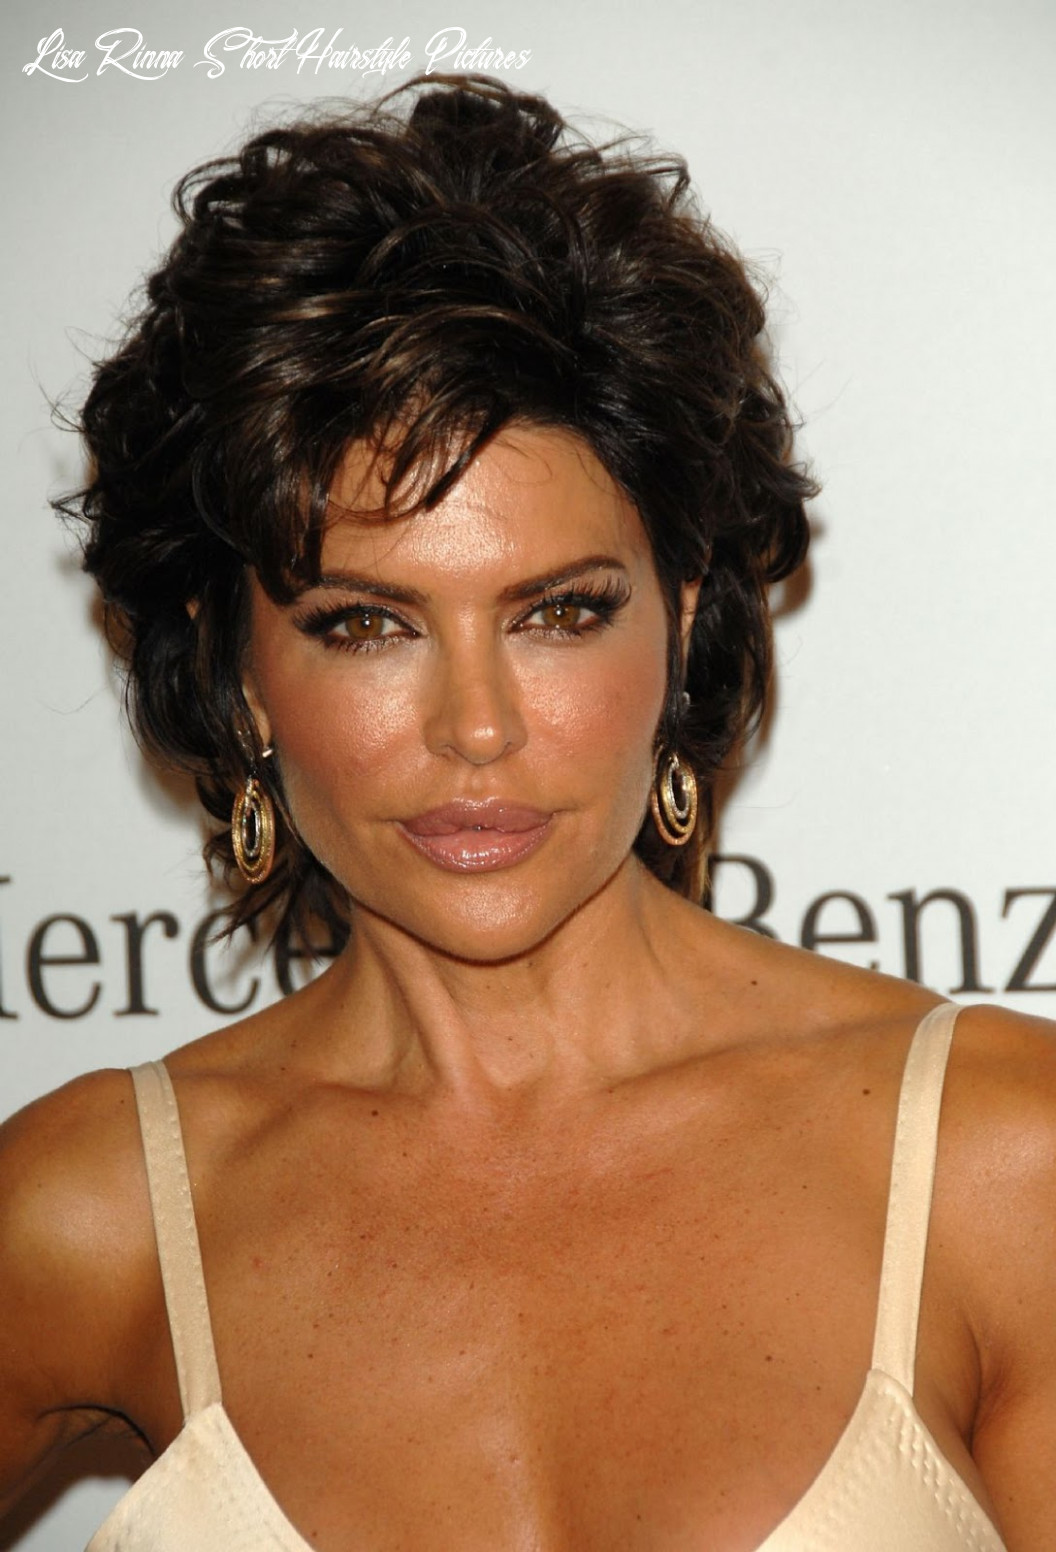 Celebrity hairstyle haircut ideas: lisa rinna short hairstyle